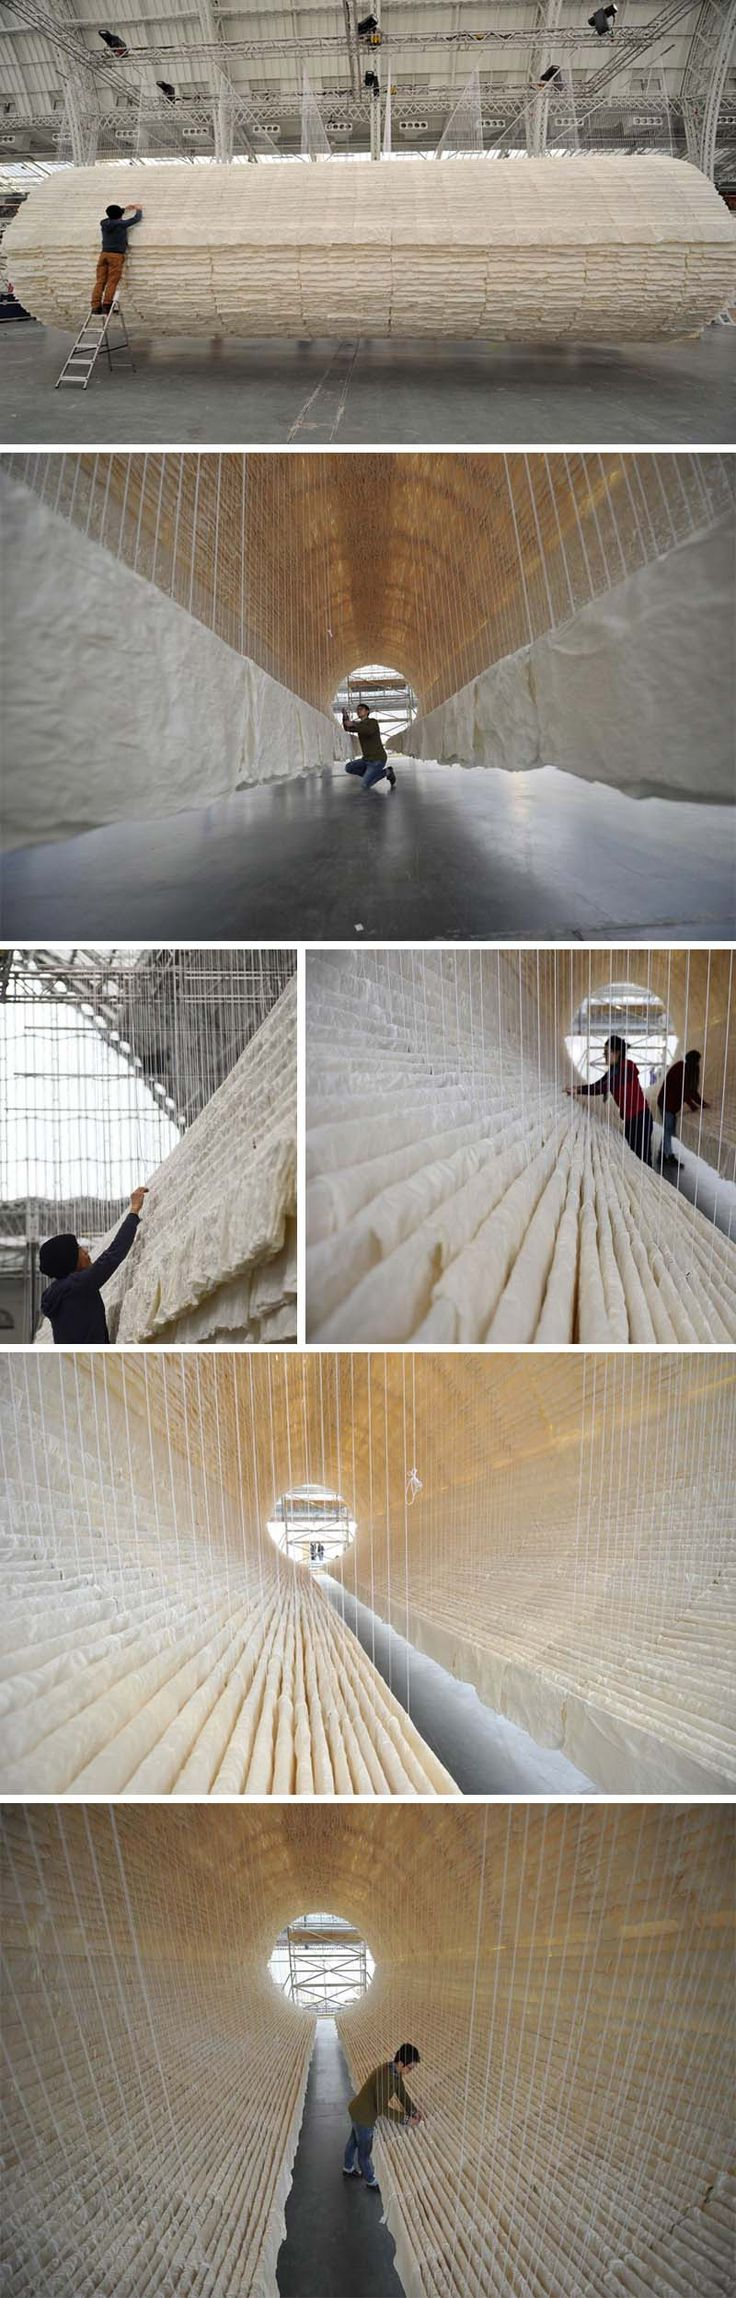 Chinese Contemporary Art, cool art installation made with rice paper and bamboo by Zhu Jinshi titled Boat, Art13 London